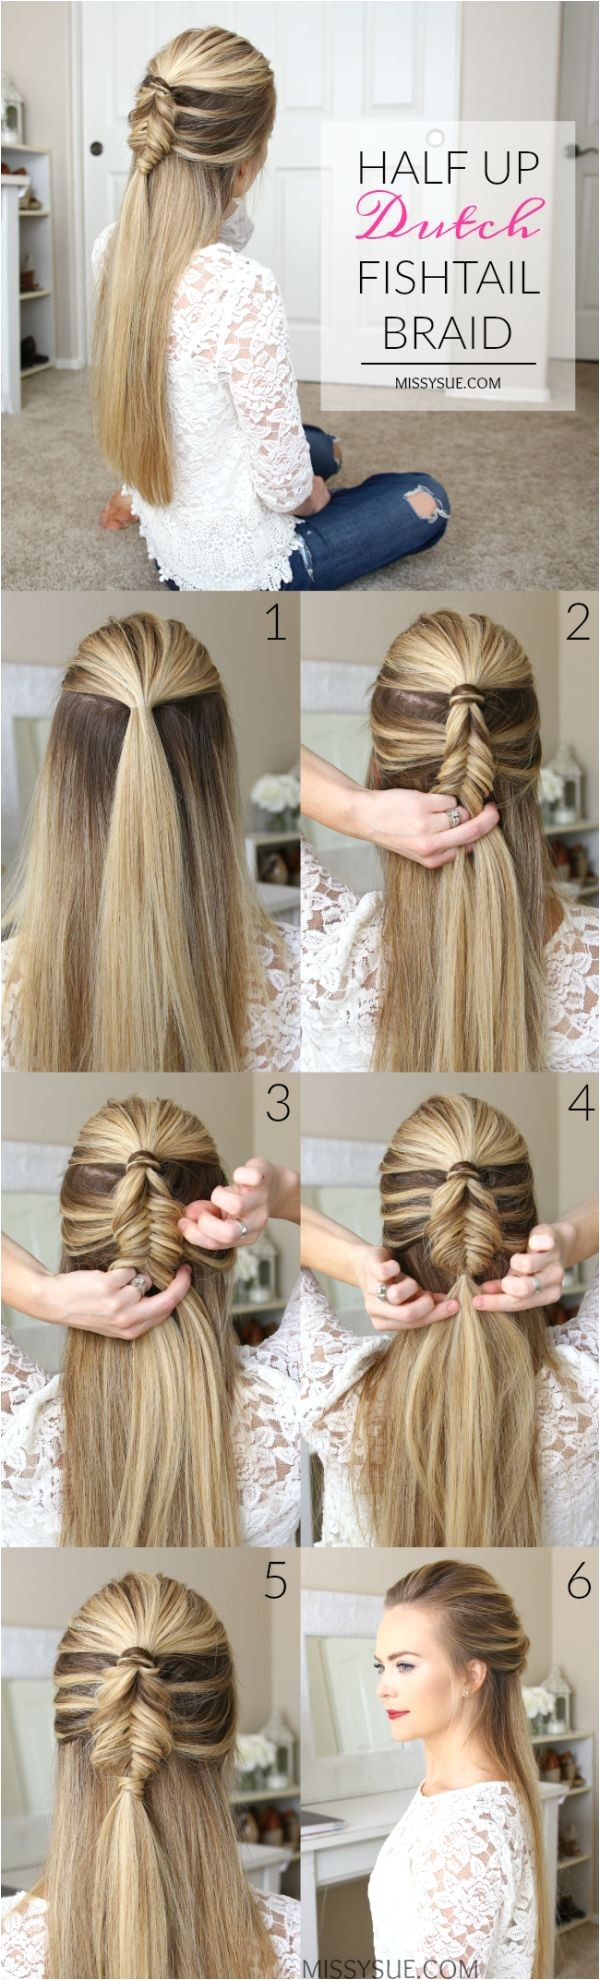 Hairstyles for Church Easy Best 20 Church Hairstyles Ideas On Pinterest